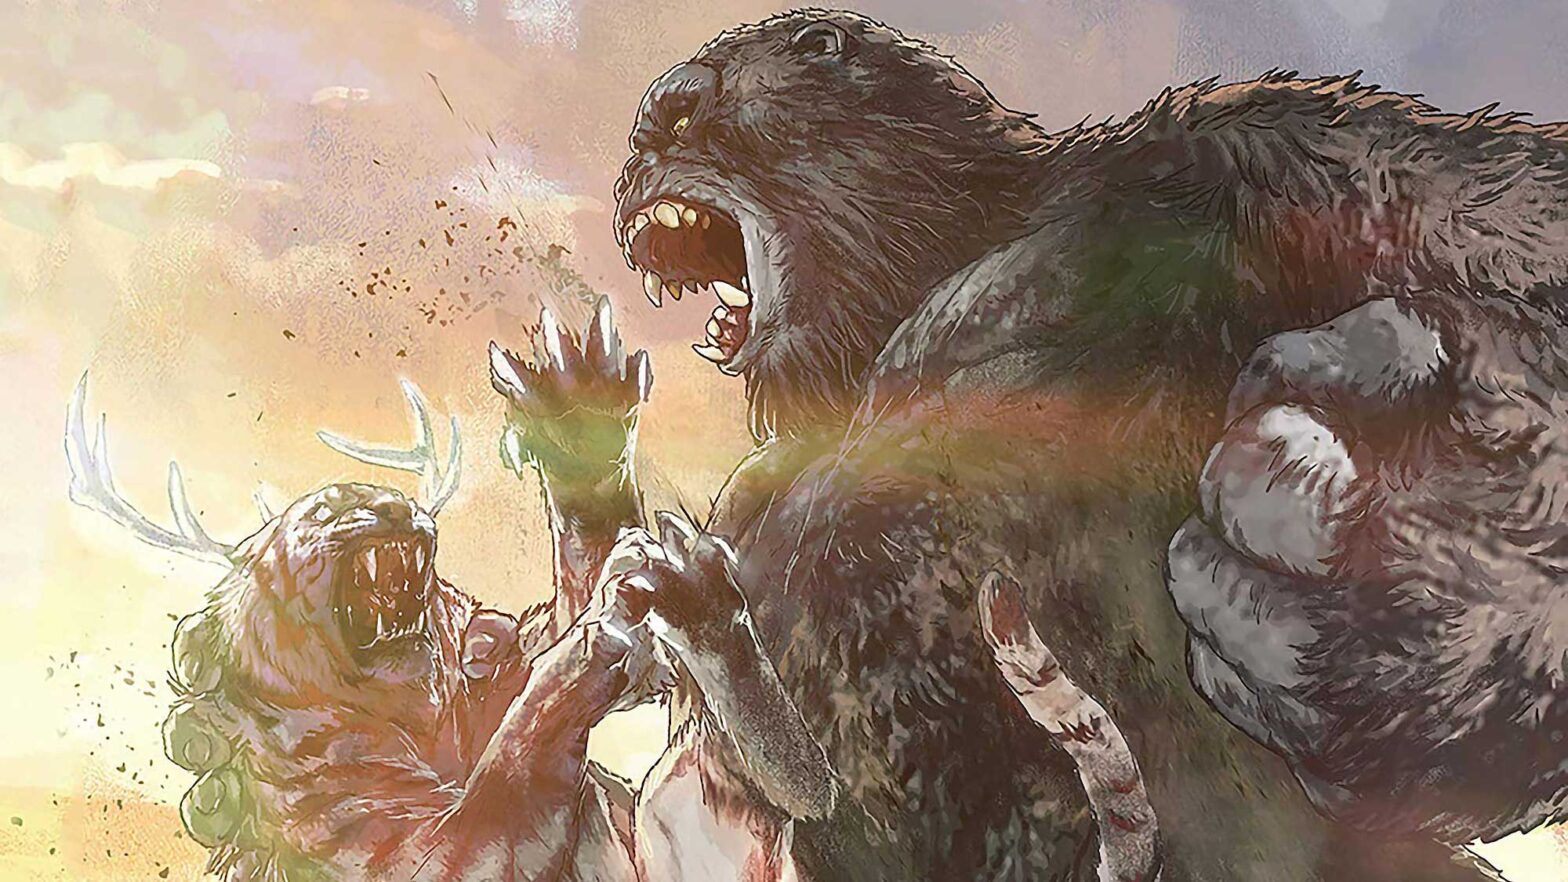 Godzilla vs. Kong Prequel Graphic Novels